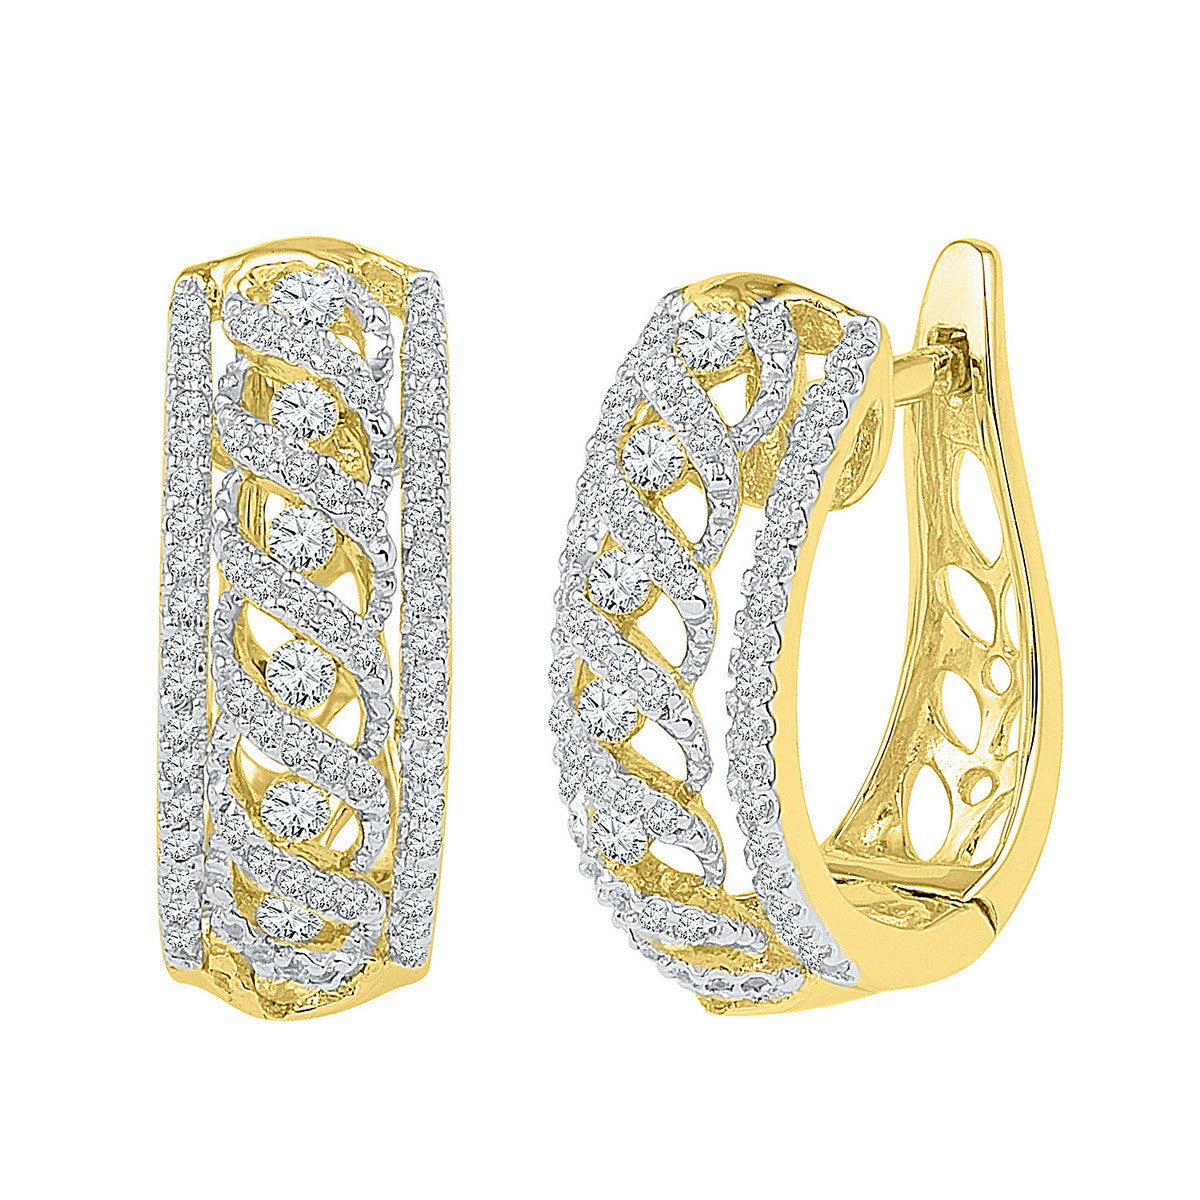 10kt Yellow Gold Womens Round Diamond Crisscrossed Openwork Hoop Earrings 3/4 Cttw 101943 - shirin-diamonds